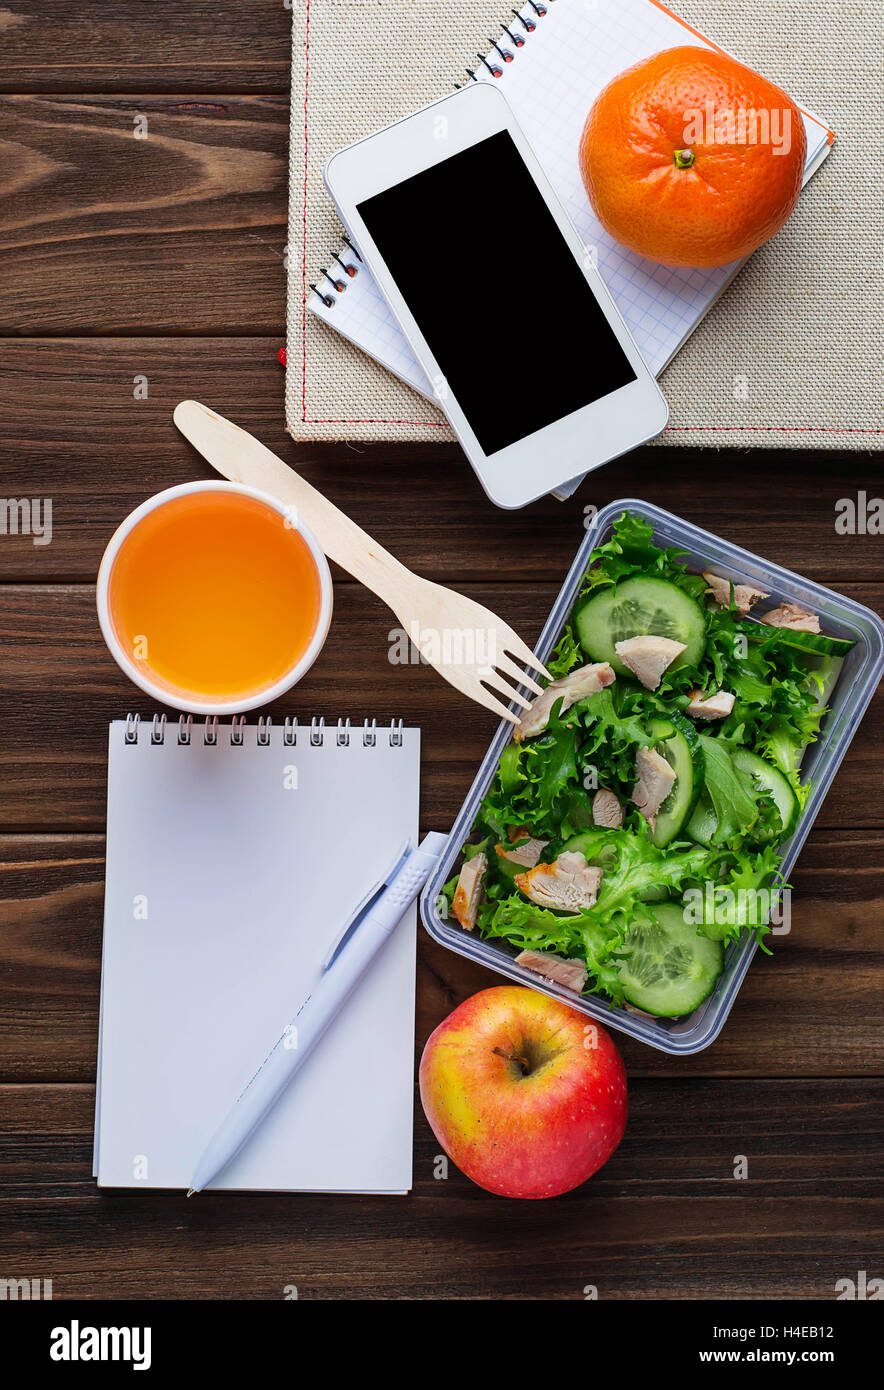 Lunch box with salad, notebook and phone. Selective focus, space for text - Stock Image